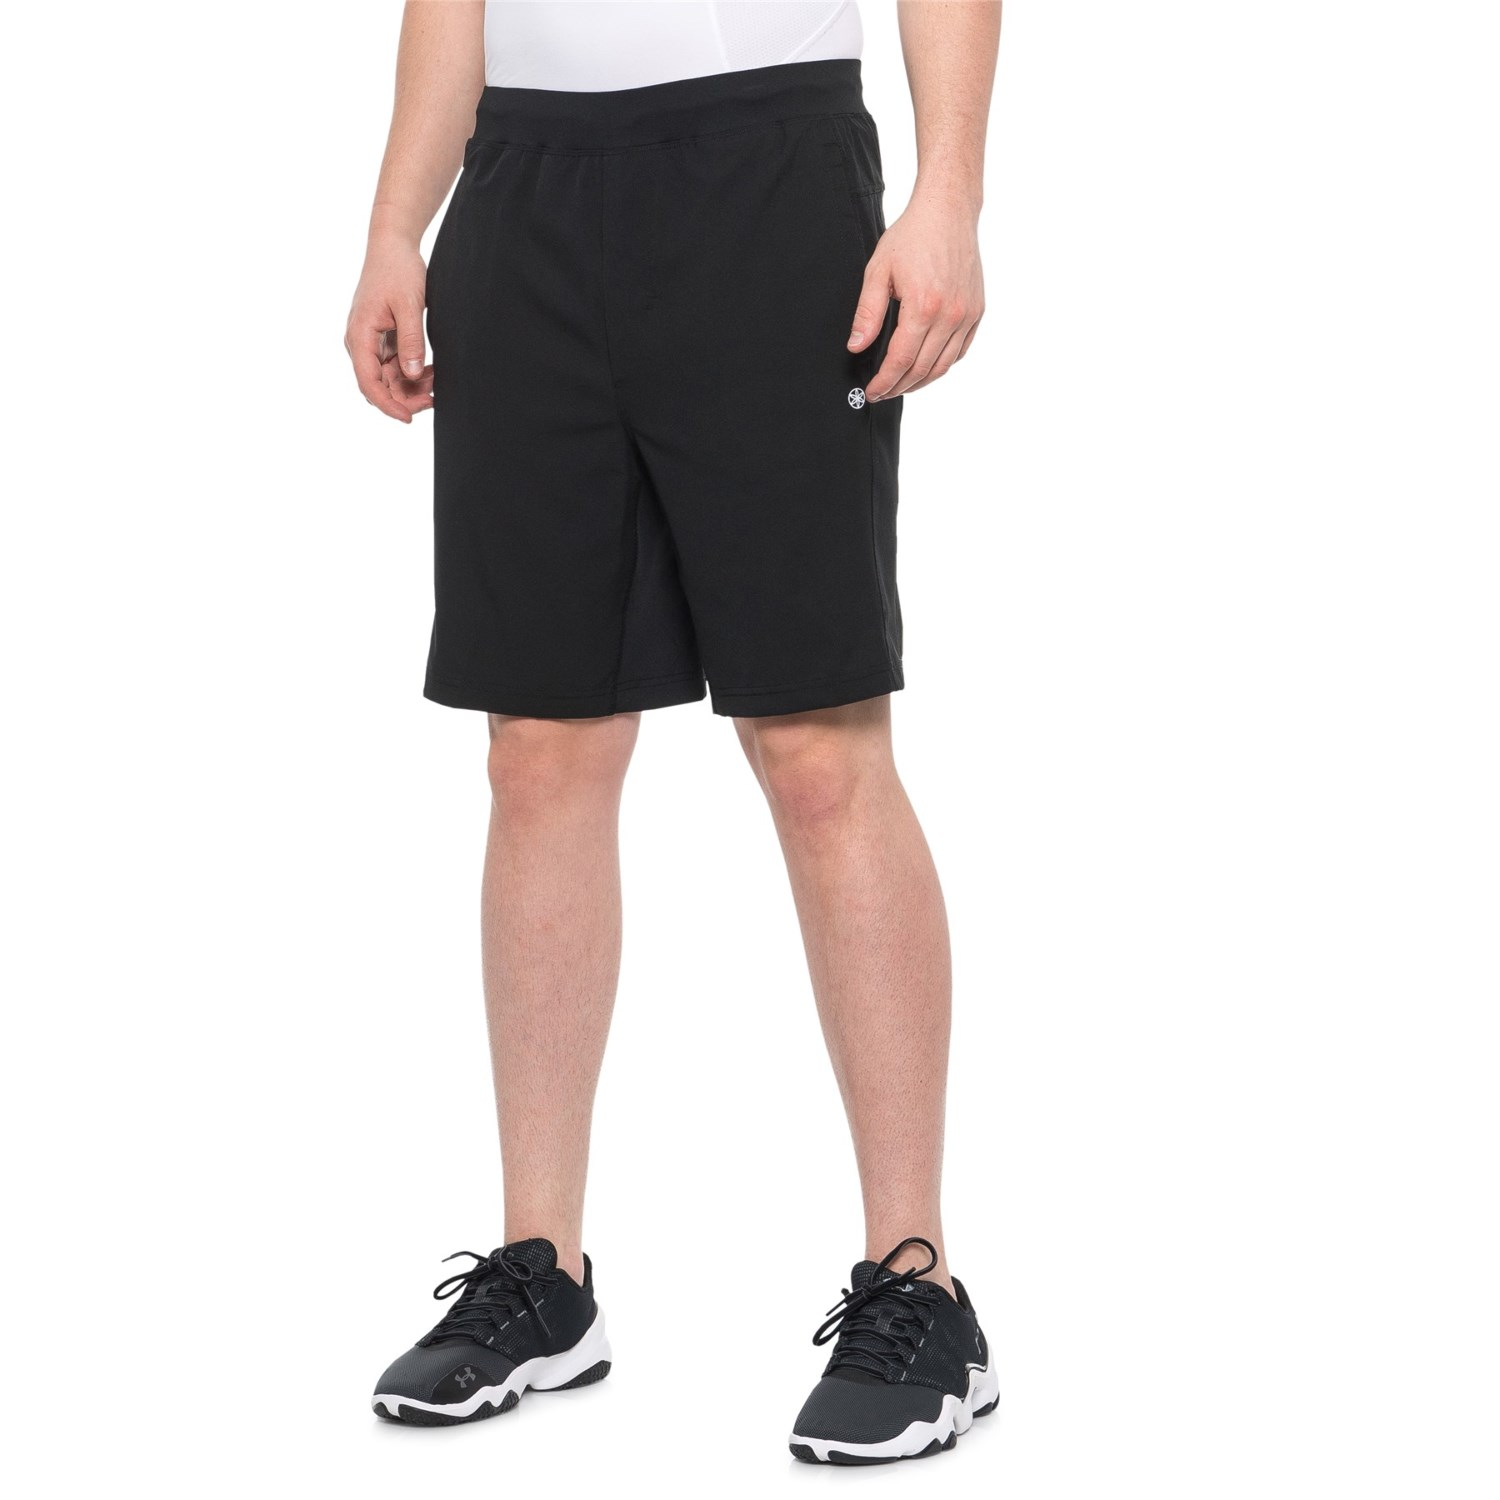 bc7ad9df5c Gaiam Posture Woven Shorts (For Men) - Save 64%